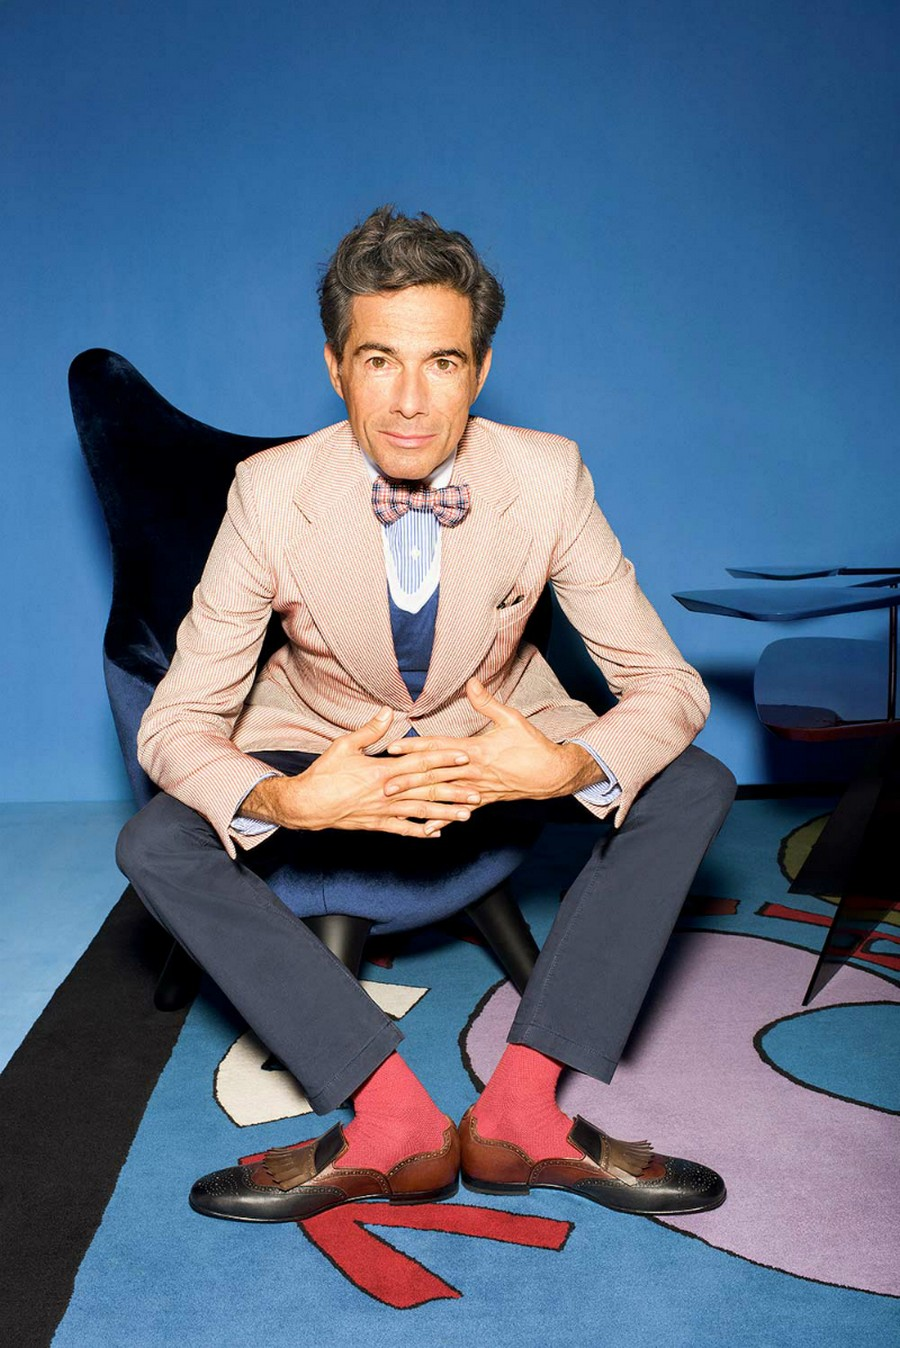 Discover the Passionate Design Style of Vincent Darré vincent darré Discover the Passionate Design Style of Vincent Darré Discover the Passionate Design Style of Vincent Darr   7